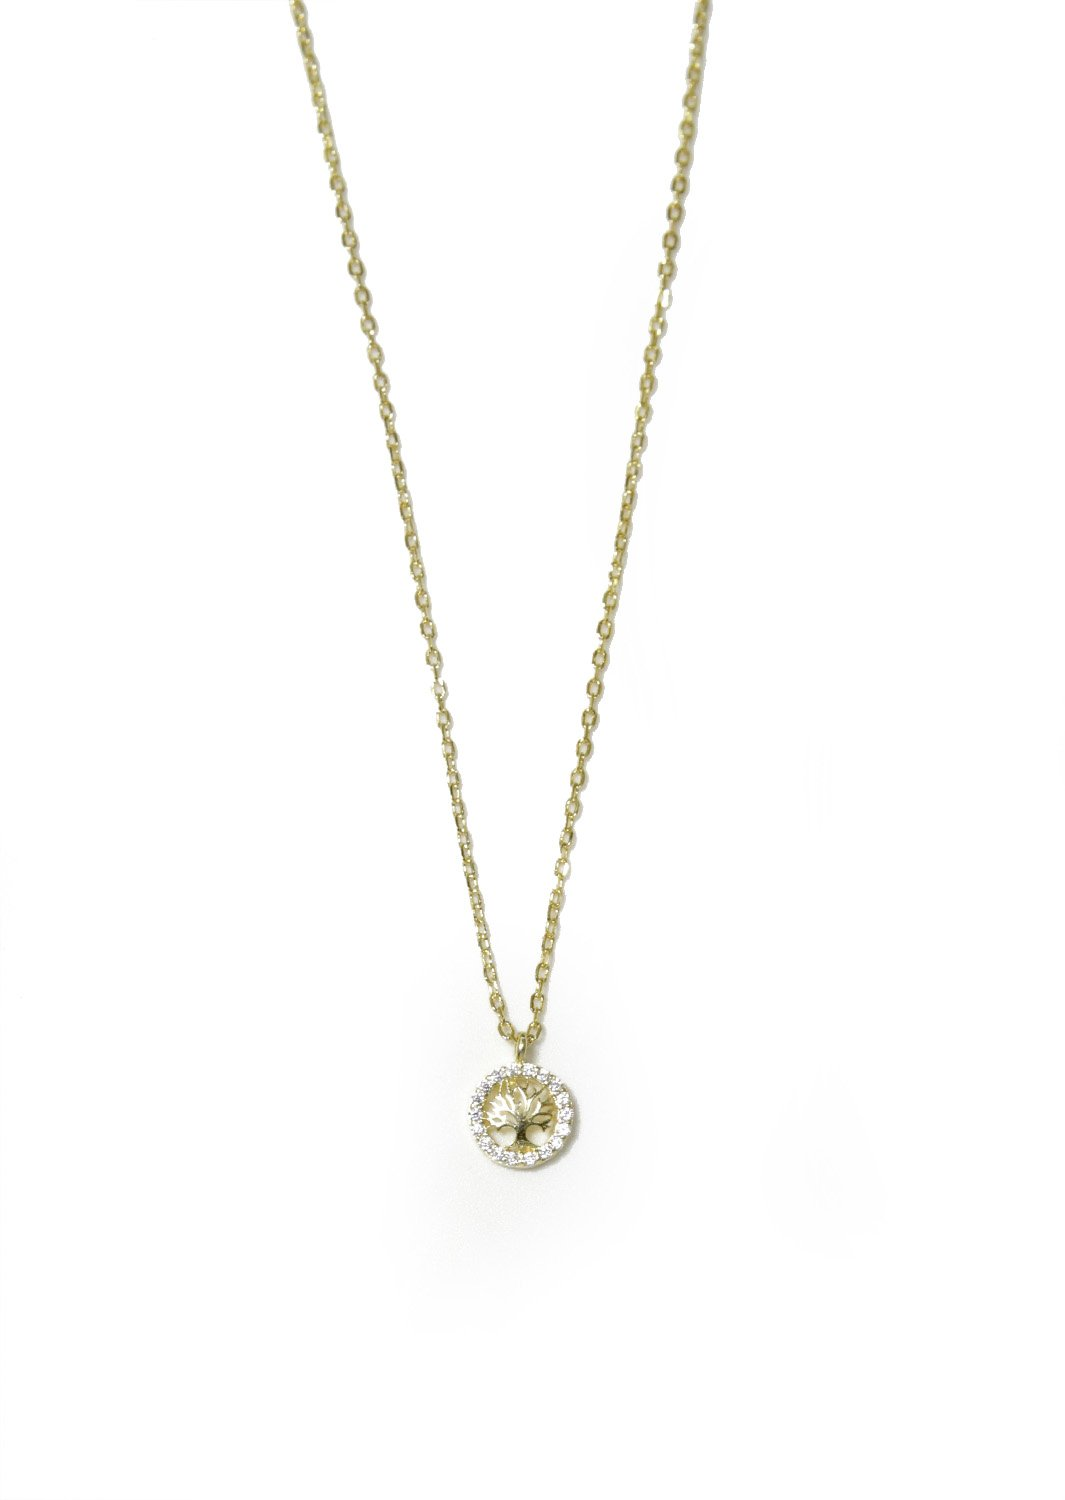 Tree of life gold plated silver necklace with zircon